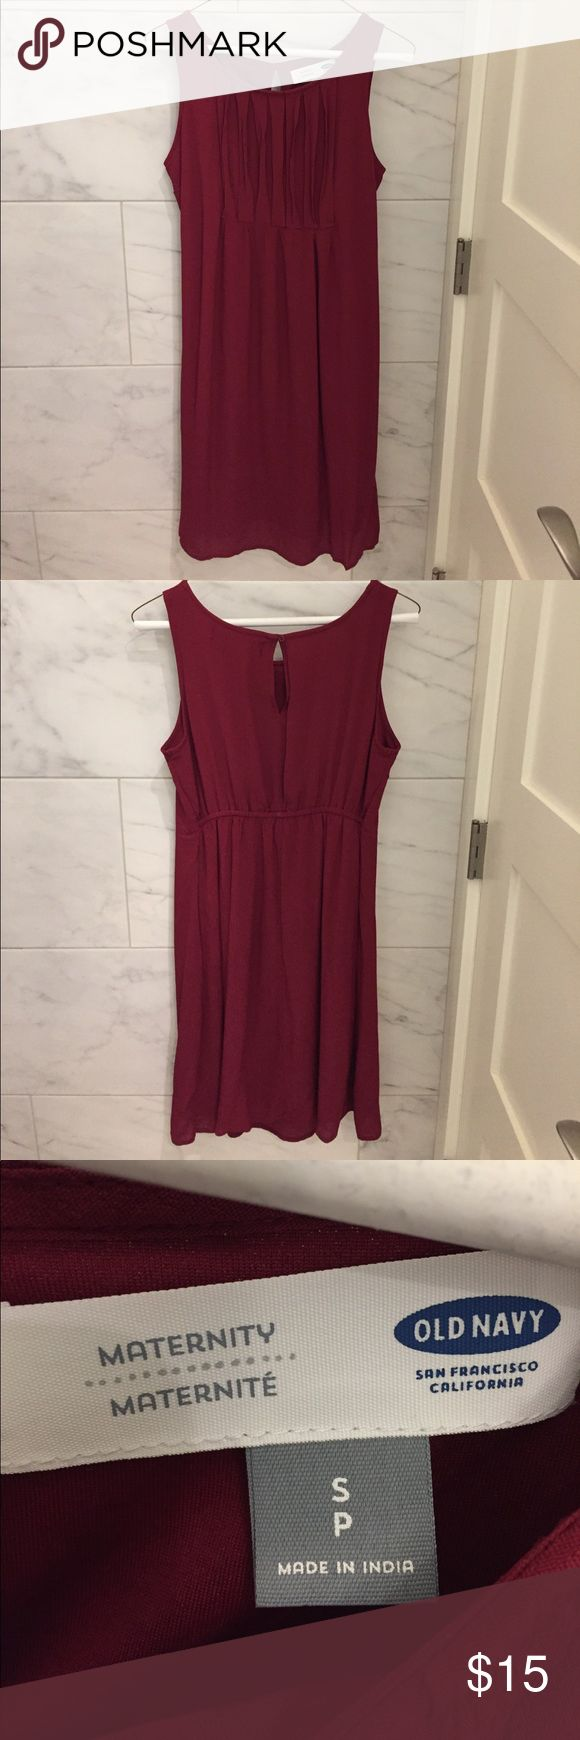 Old Navy maternity dress size small Old Navy maternity dress size small burgundy. Pleats across the front top. Hits above the knee. Worn a handful of times. Great condition. Lined. Old Navy Dresses